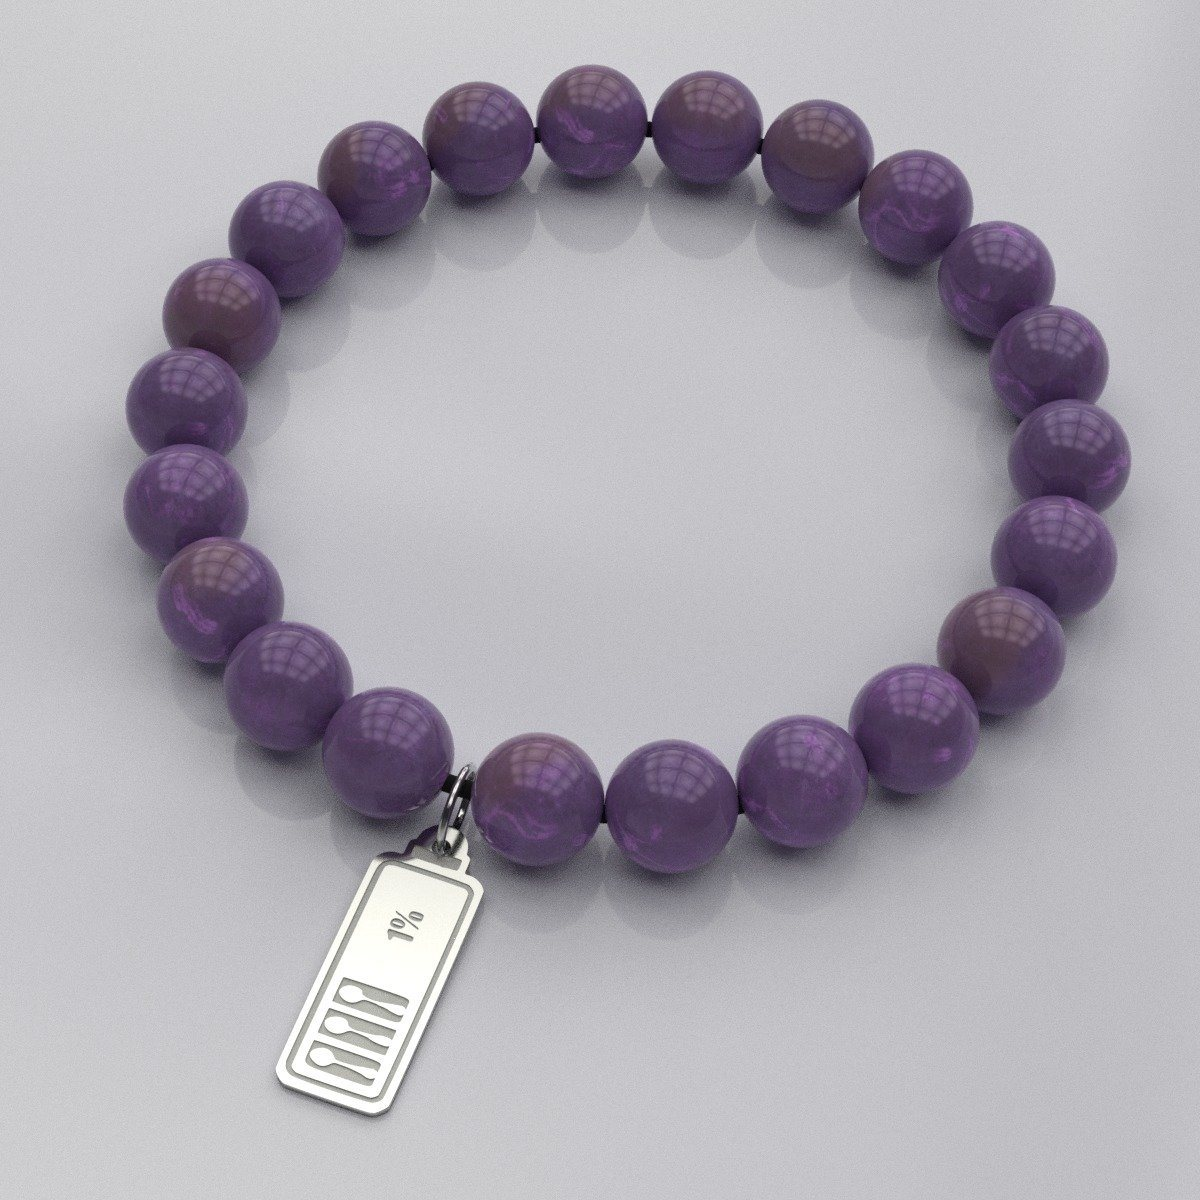 Low Spoon Battery Beads Bracelet - The Unchargeables